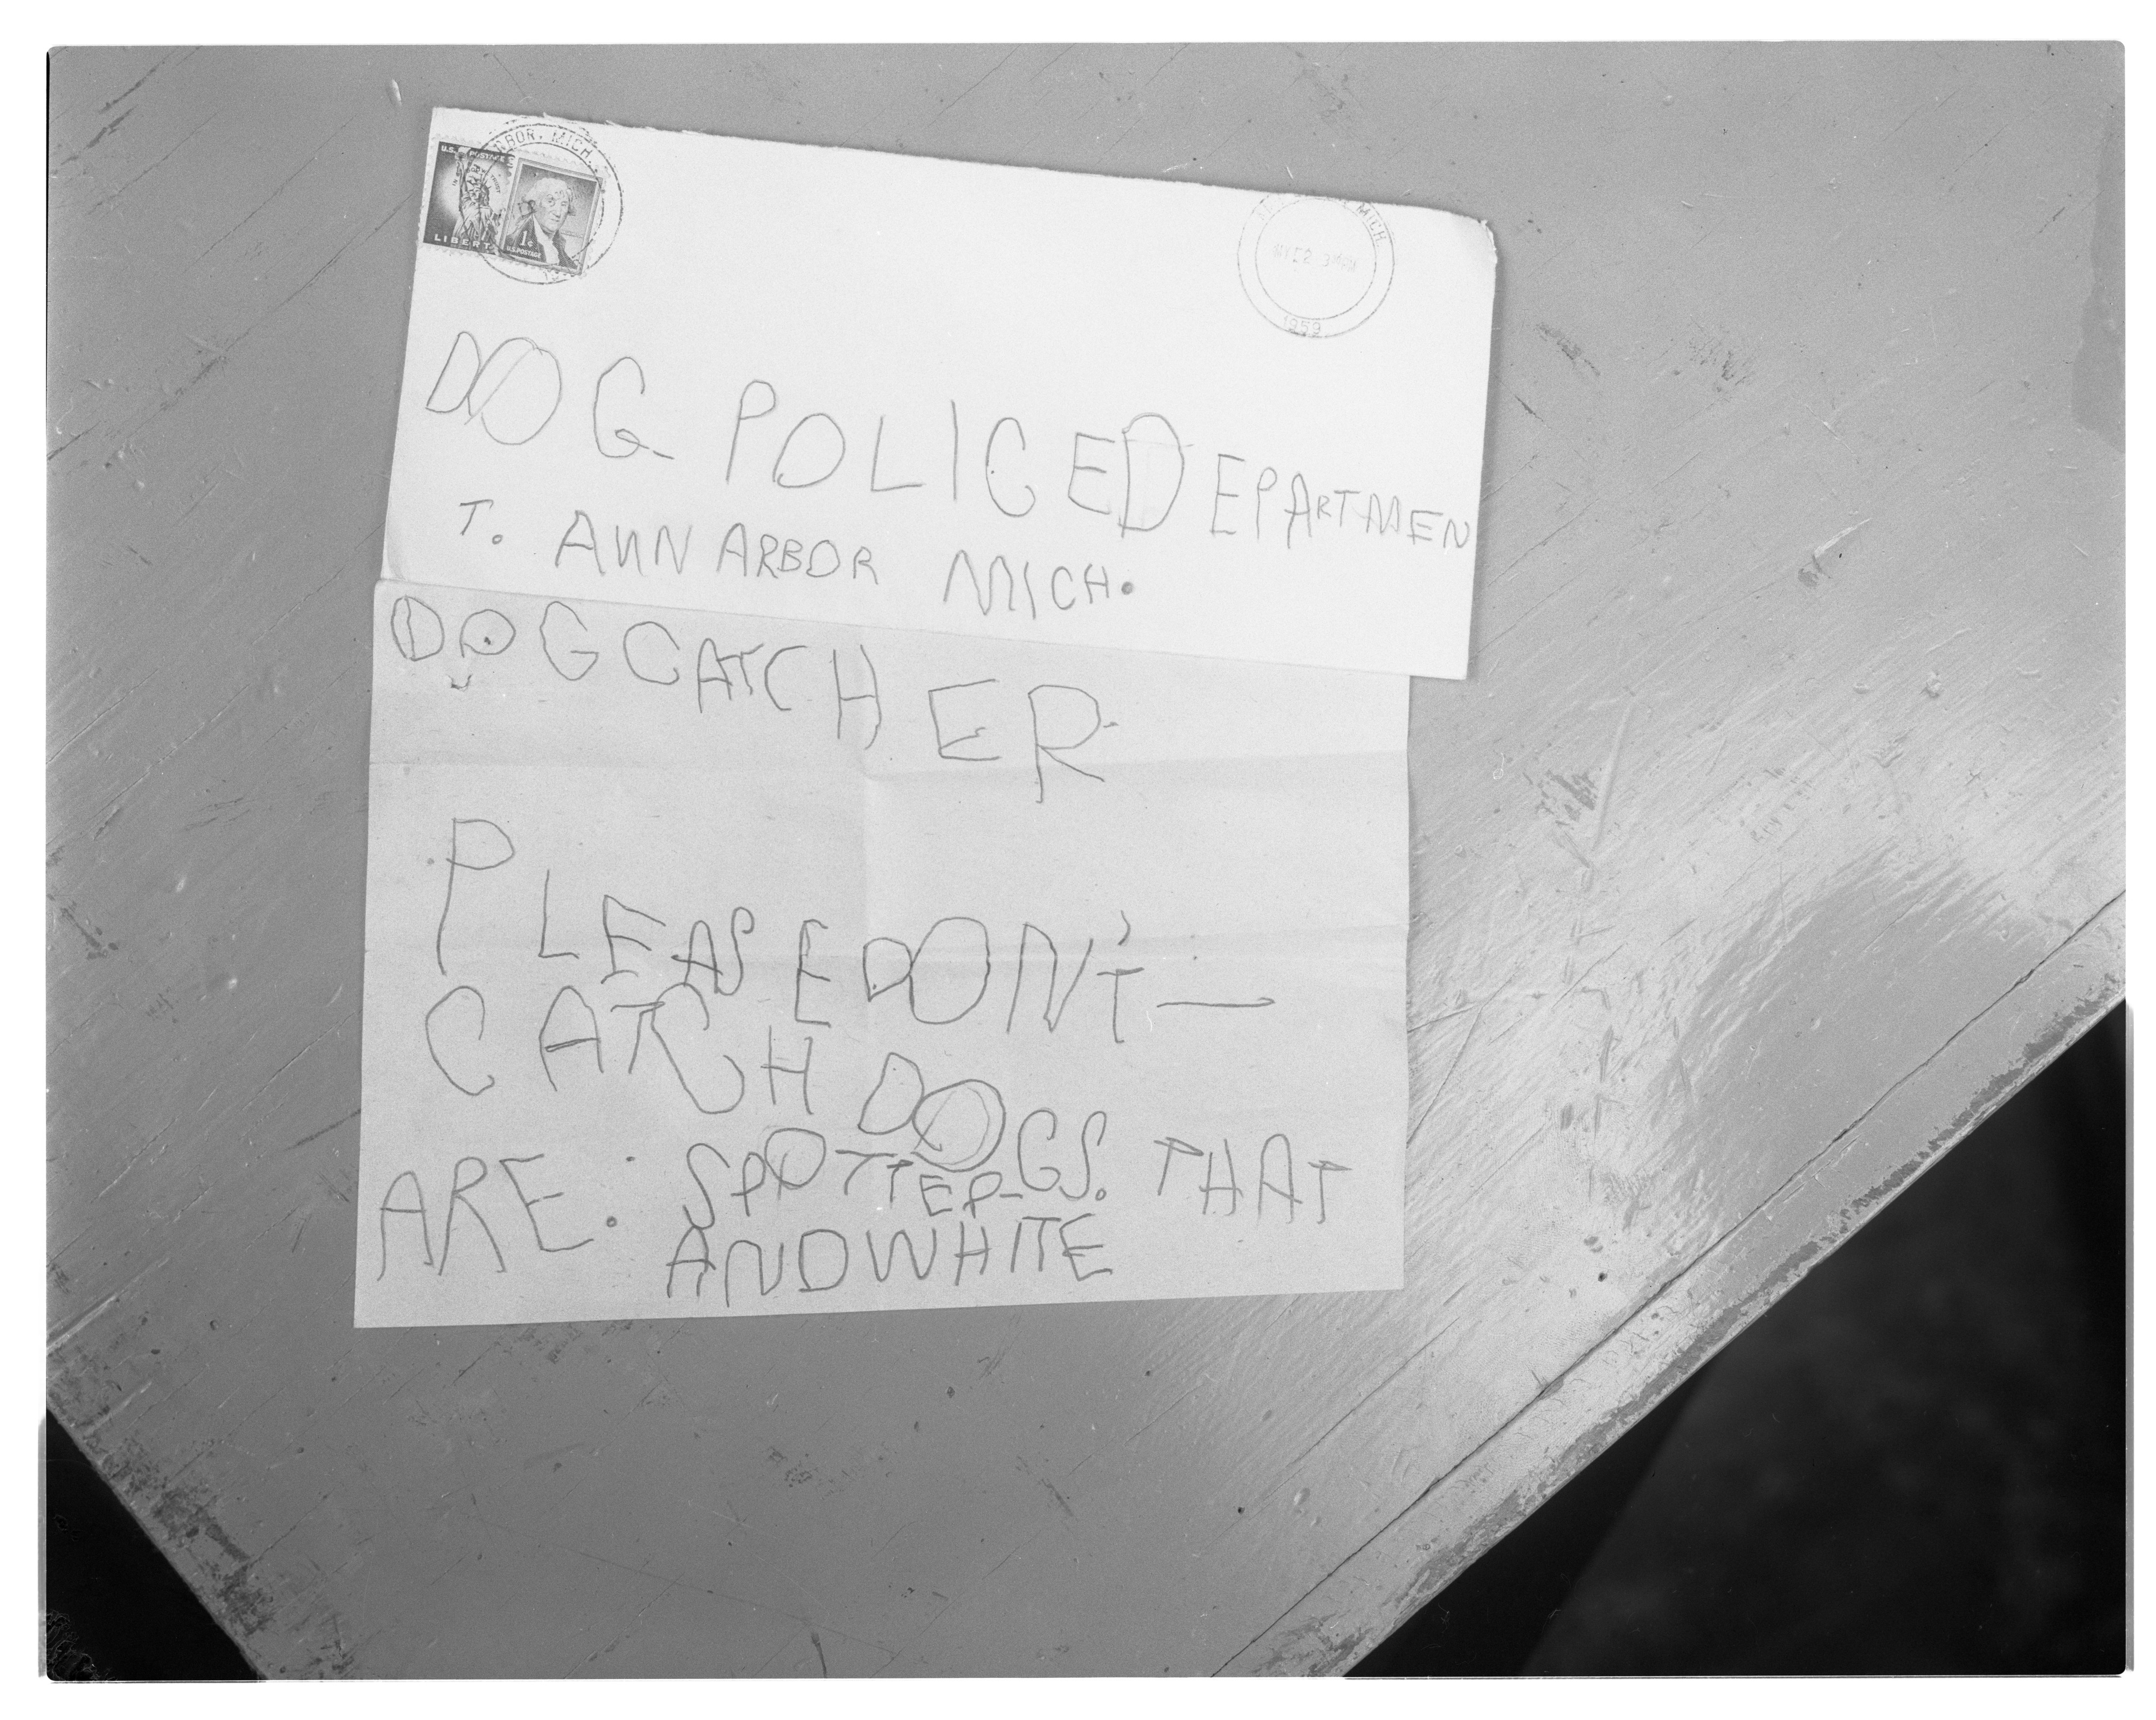 Letter Sent By Five-Year-Old David Johnson to Ann Arbor Police Department, May 1959 image